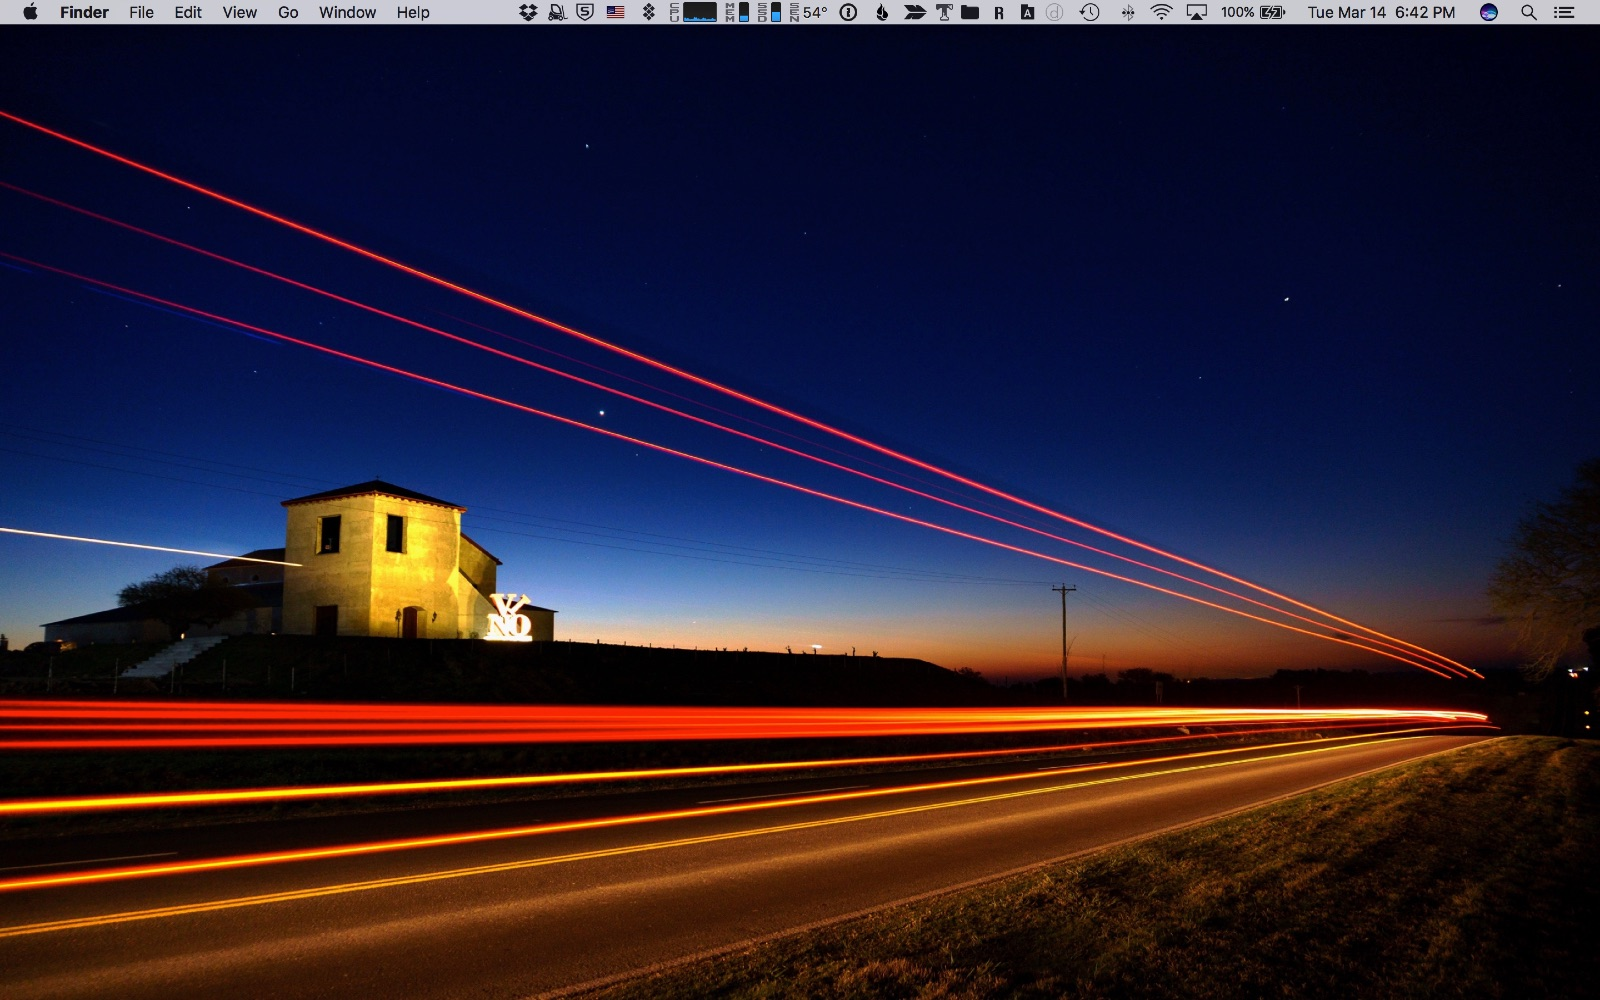 How To Customize The Desktop Background On Your Mac